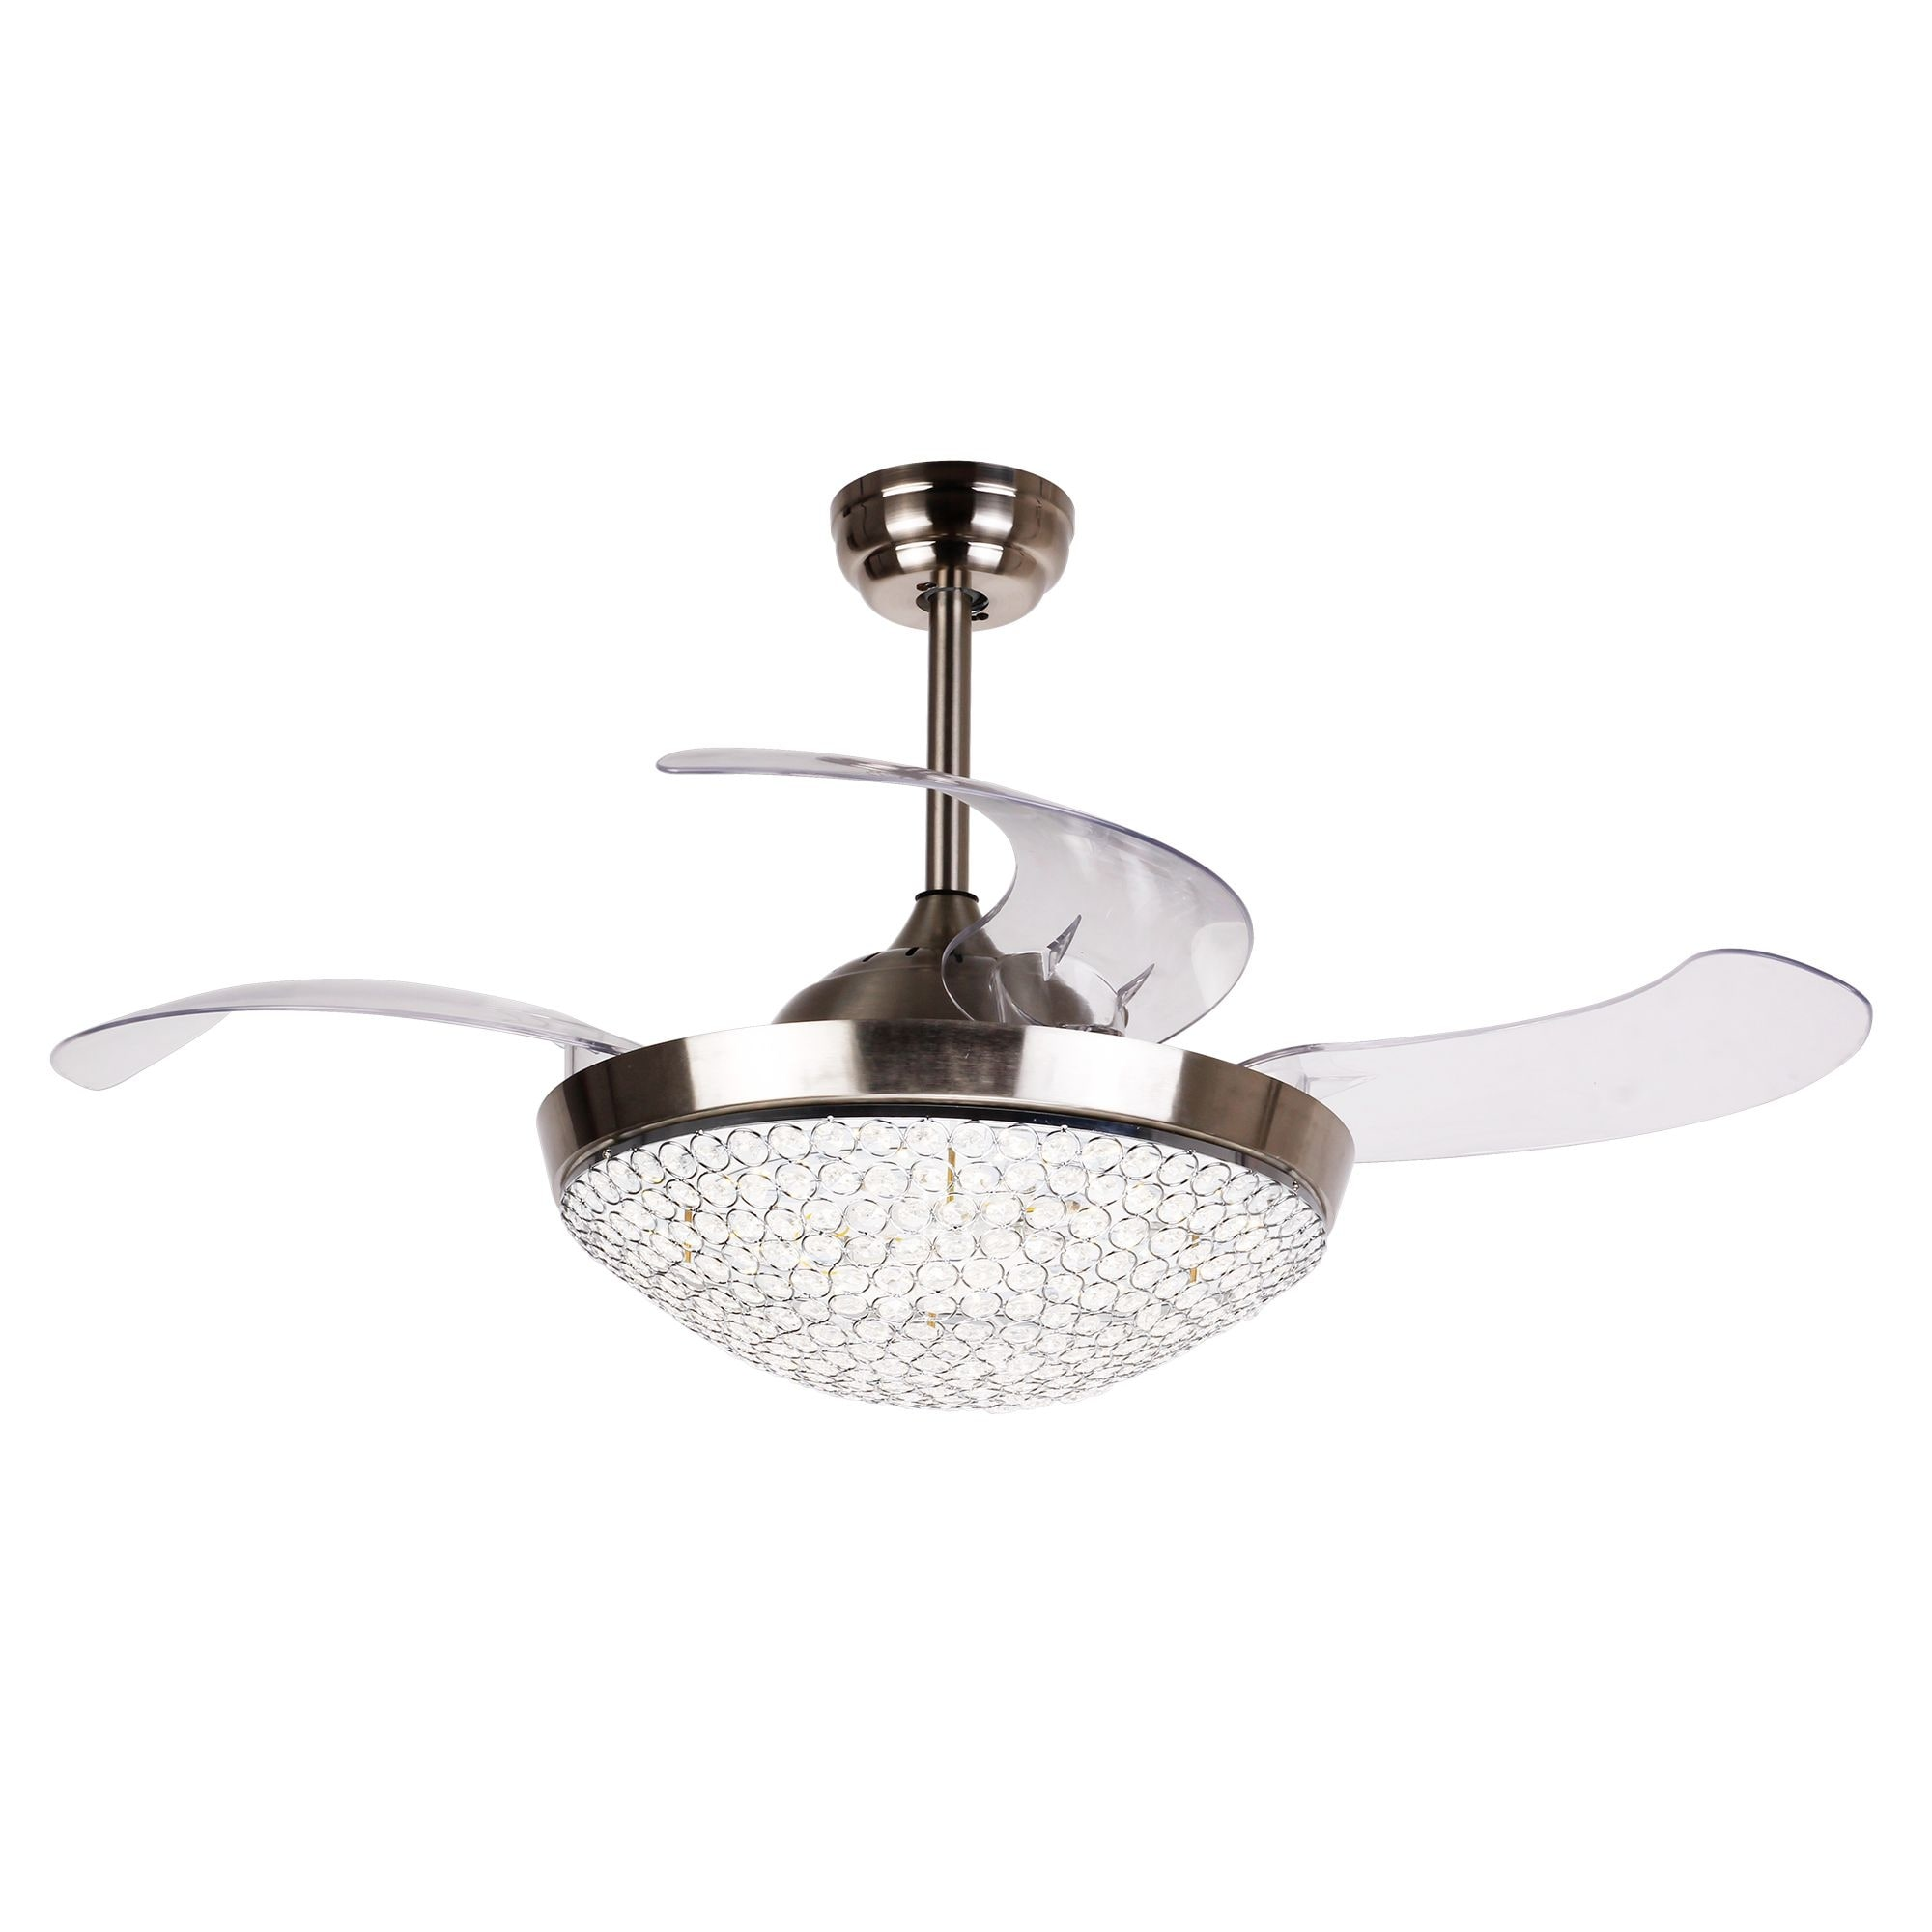 Shop Dimmable Restracable 4 Blades Crystal 42 Inch Led Ceiling Fan Wiring Black White Blue Free Shipping Today 18915960